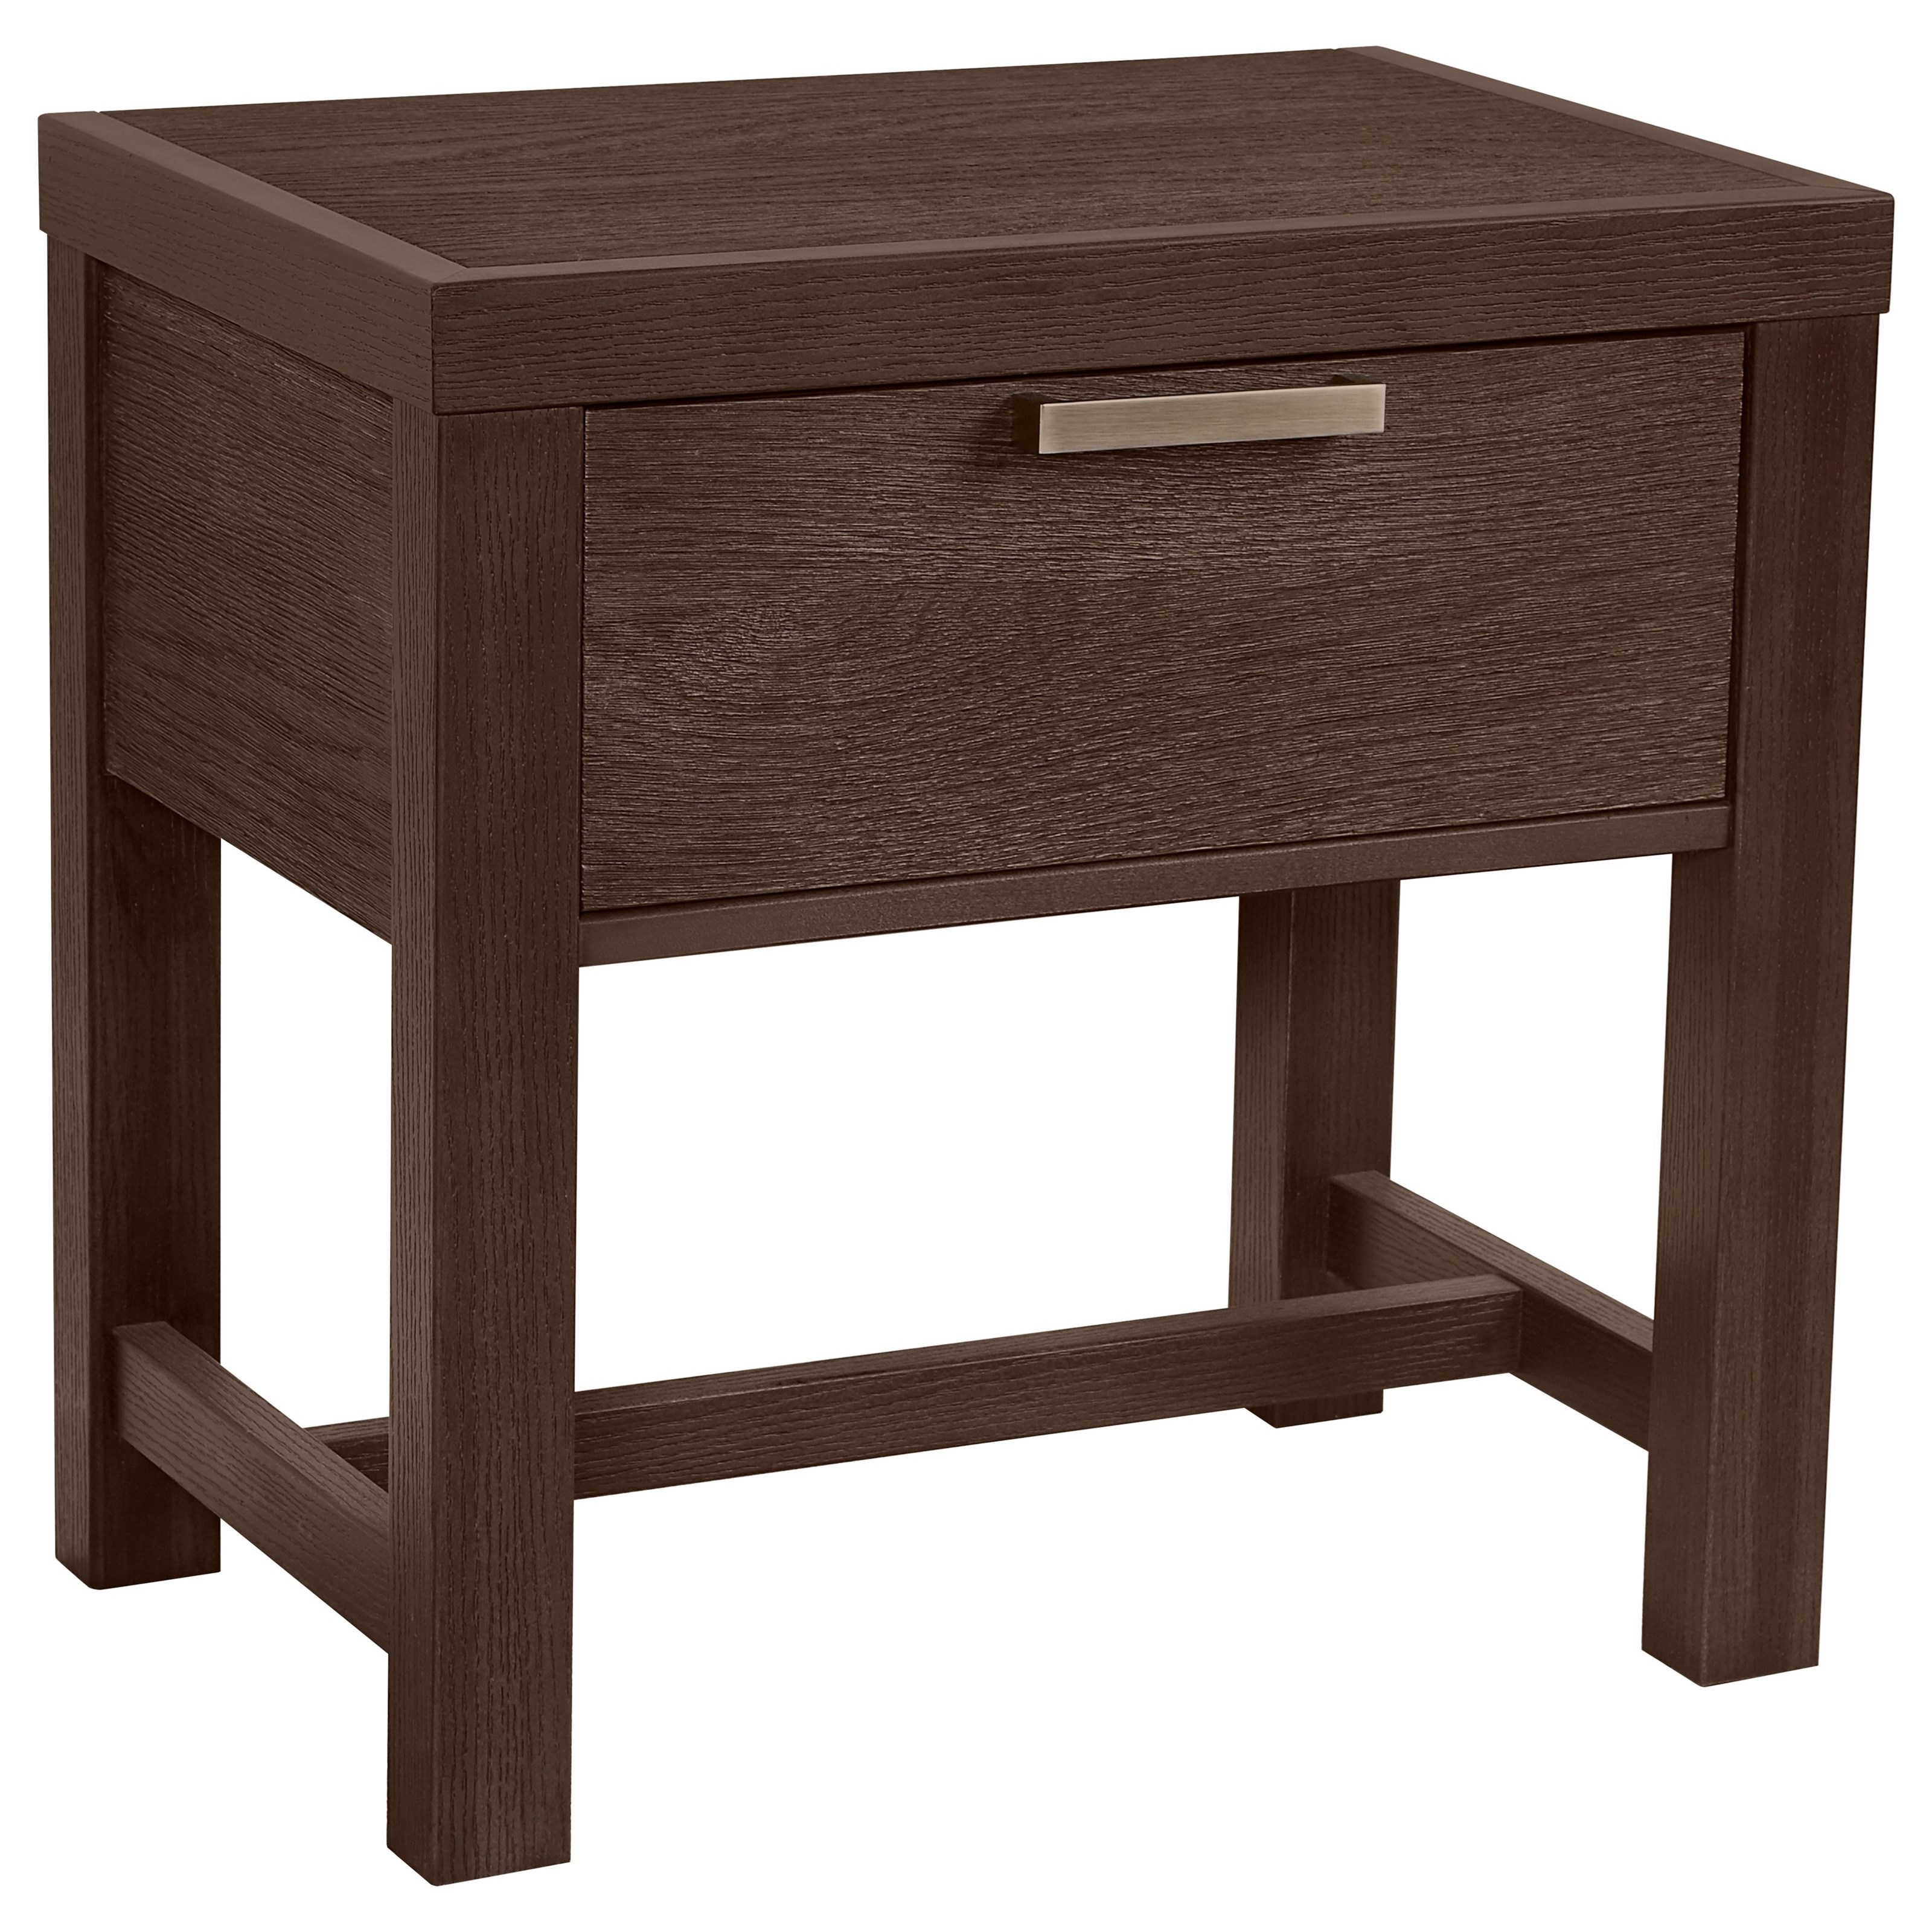 Vaughan Bassett American Modern Bedside Table - 1 Drawer w/ USB Charging - Item Number: 650-224